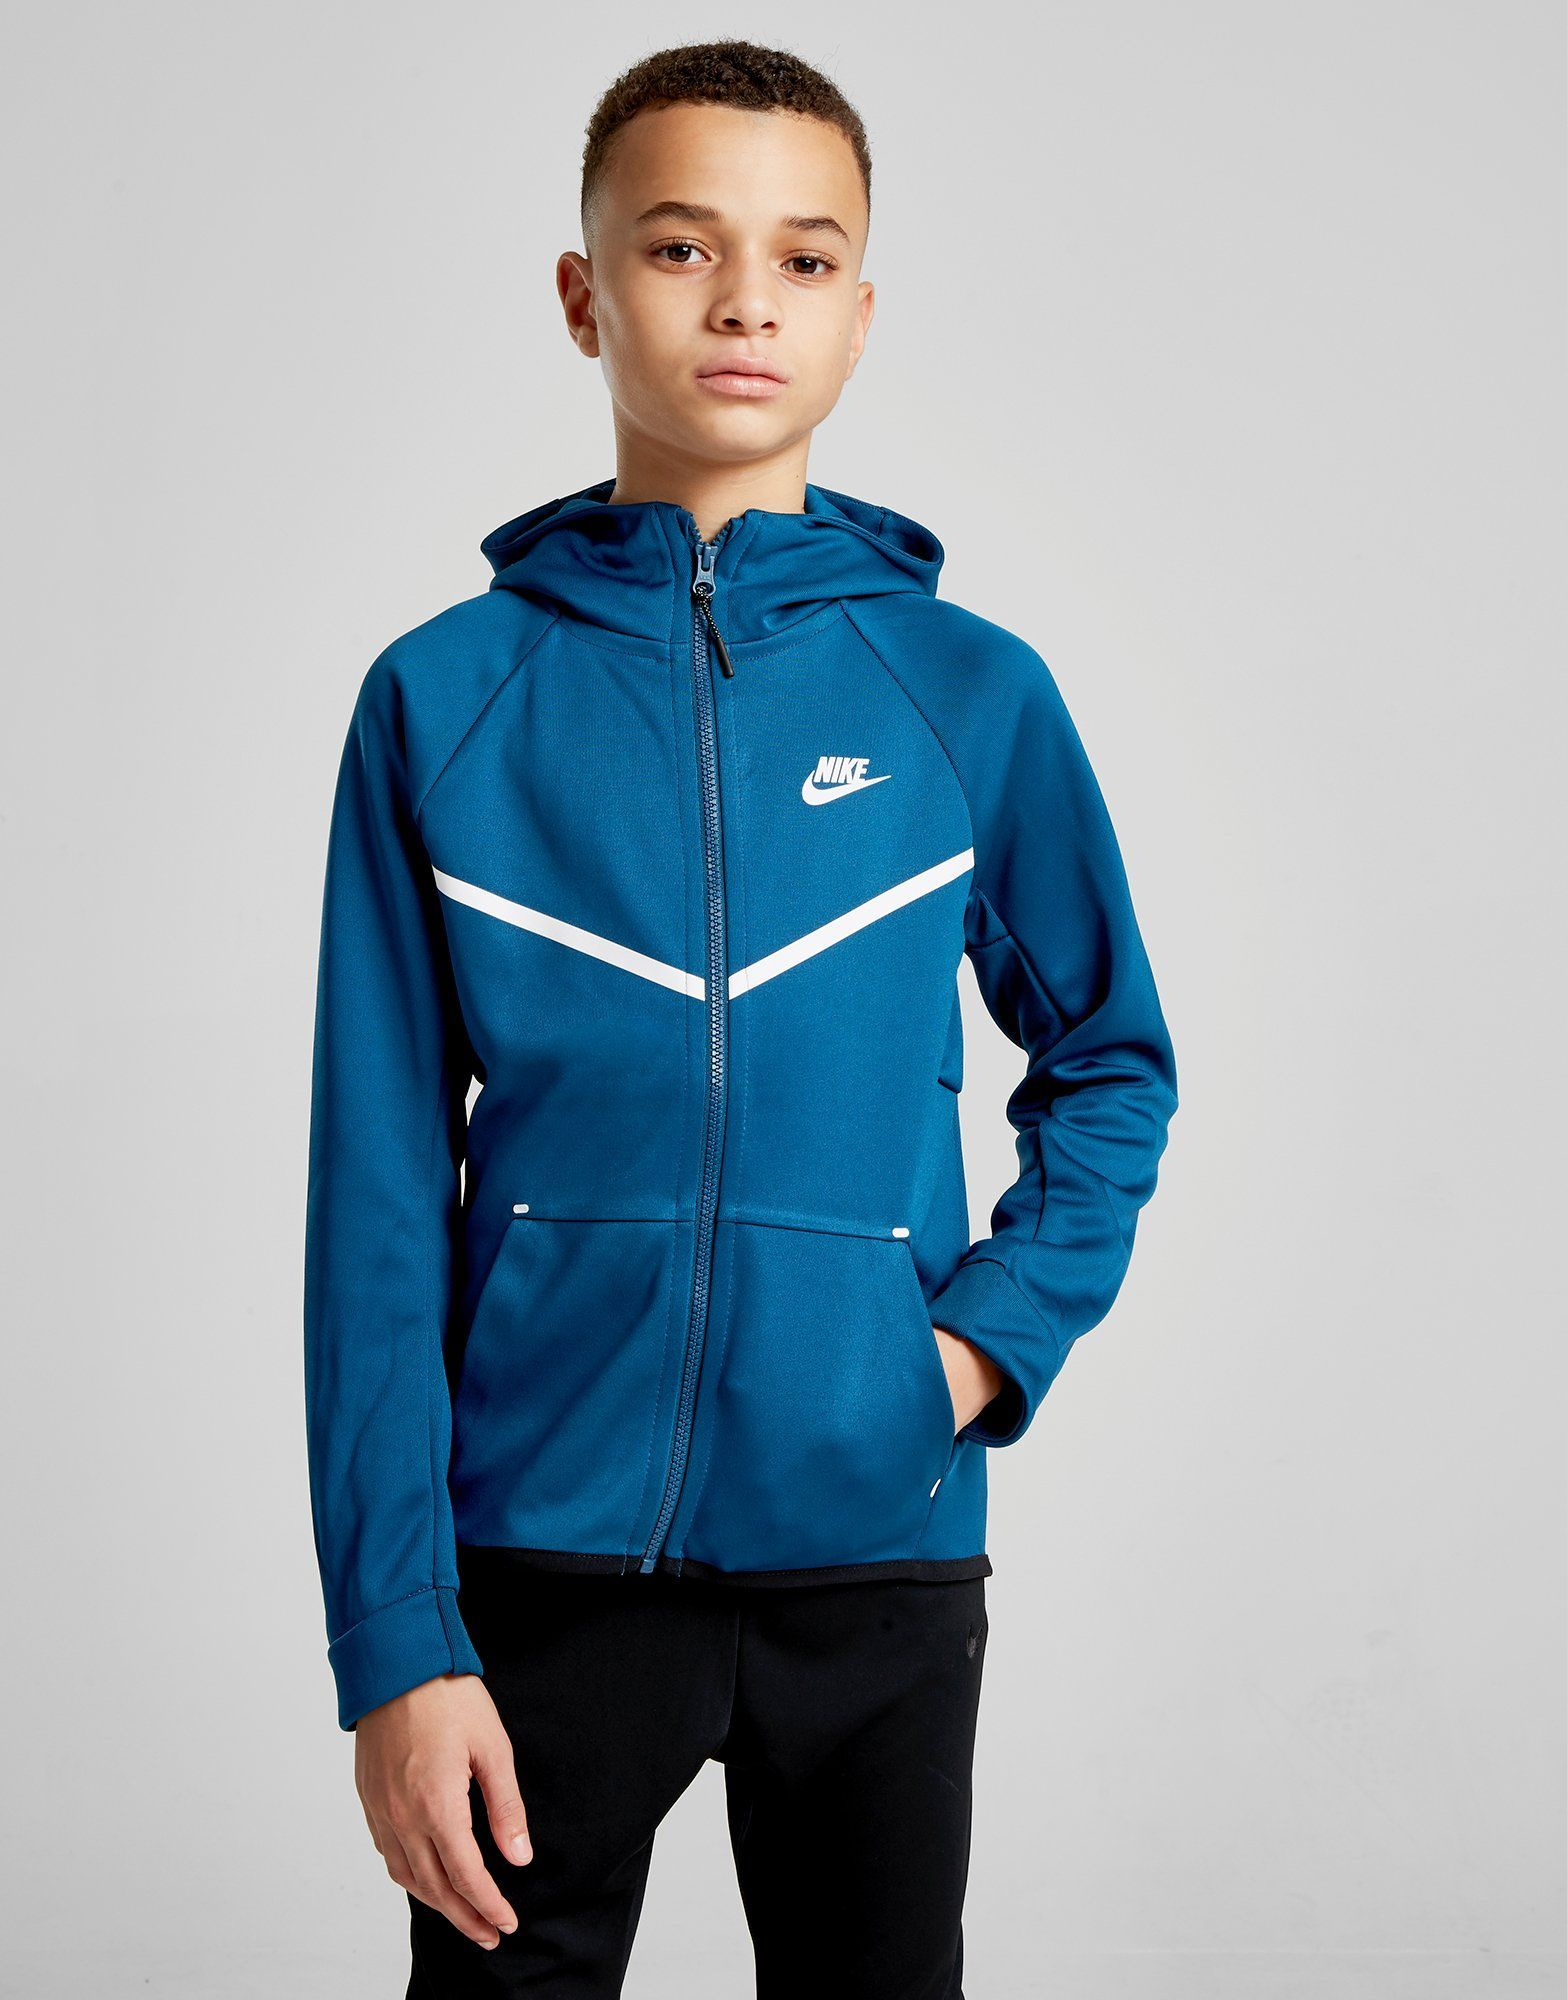 56e7ef0e2cde Nike Tech Poly Full Zip Hoodie Junior - Shop online for Nike Tech Poly Full  Zip Hoodie Junior with JD Sports